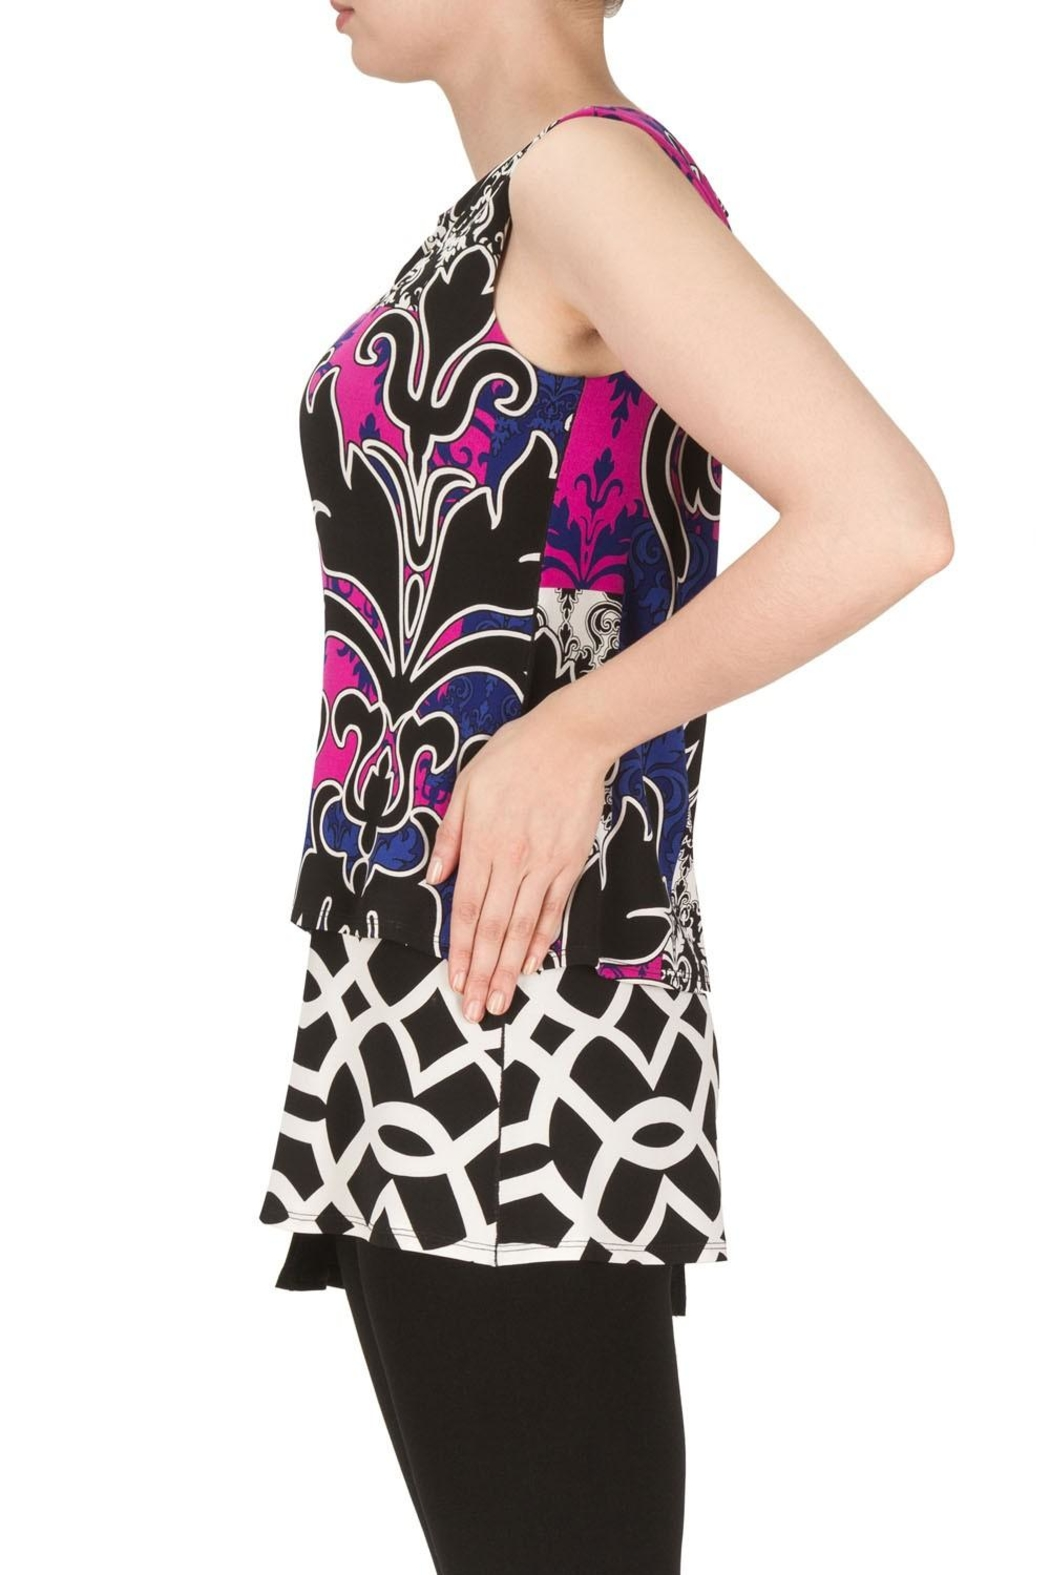 Joseph Ribkoff Nicole Patterned Top - Front Full Image